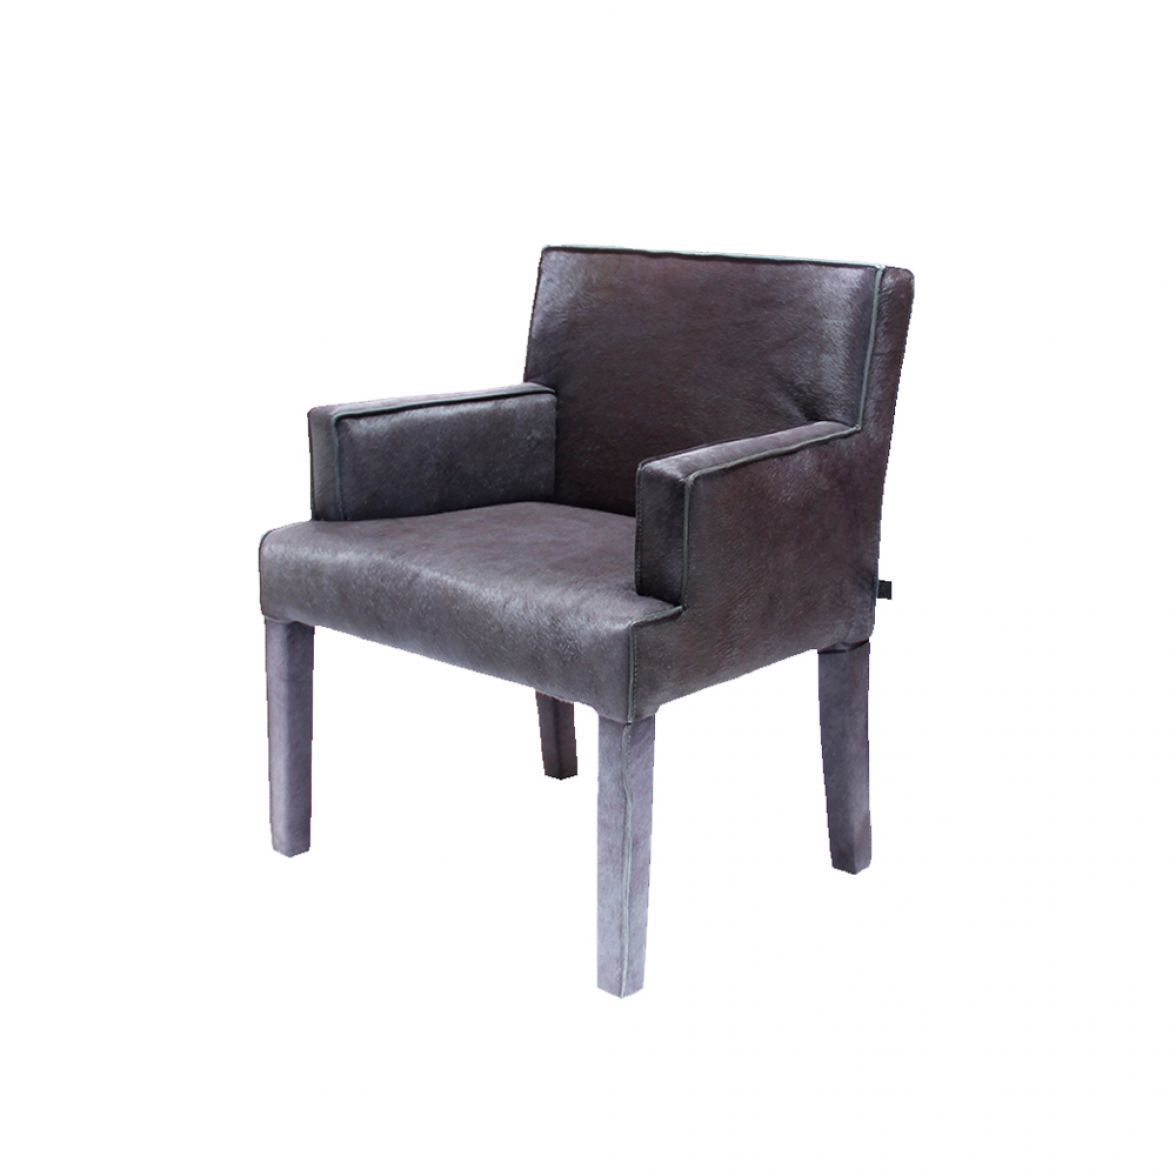 Stockholm hairy grey armchair фото цена